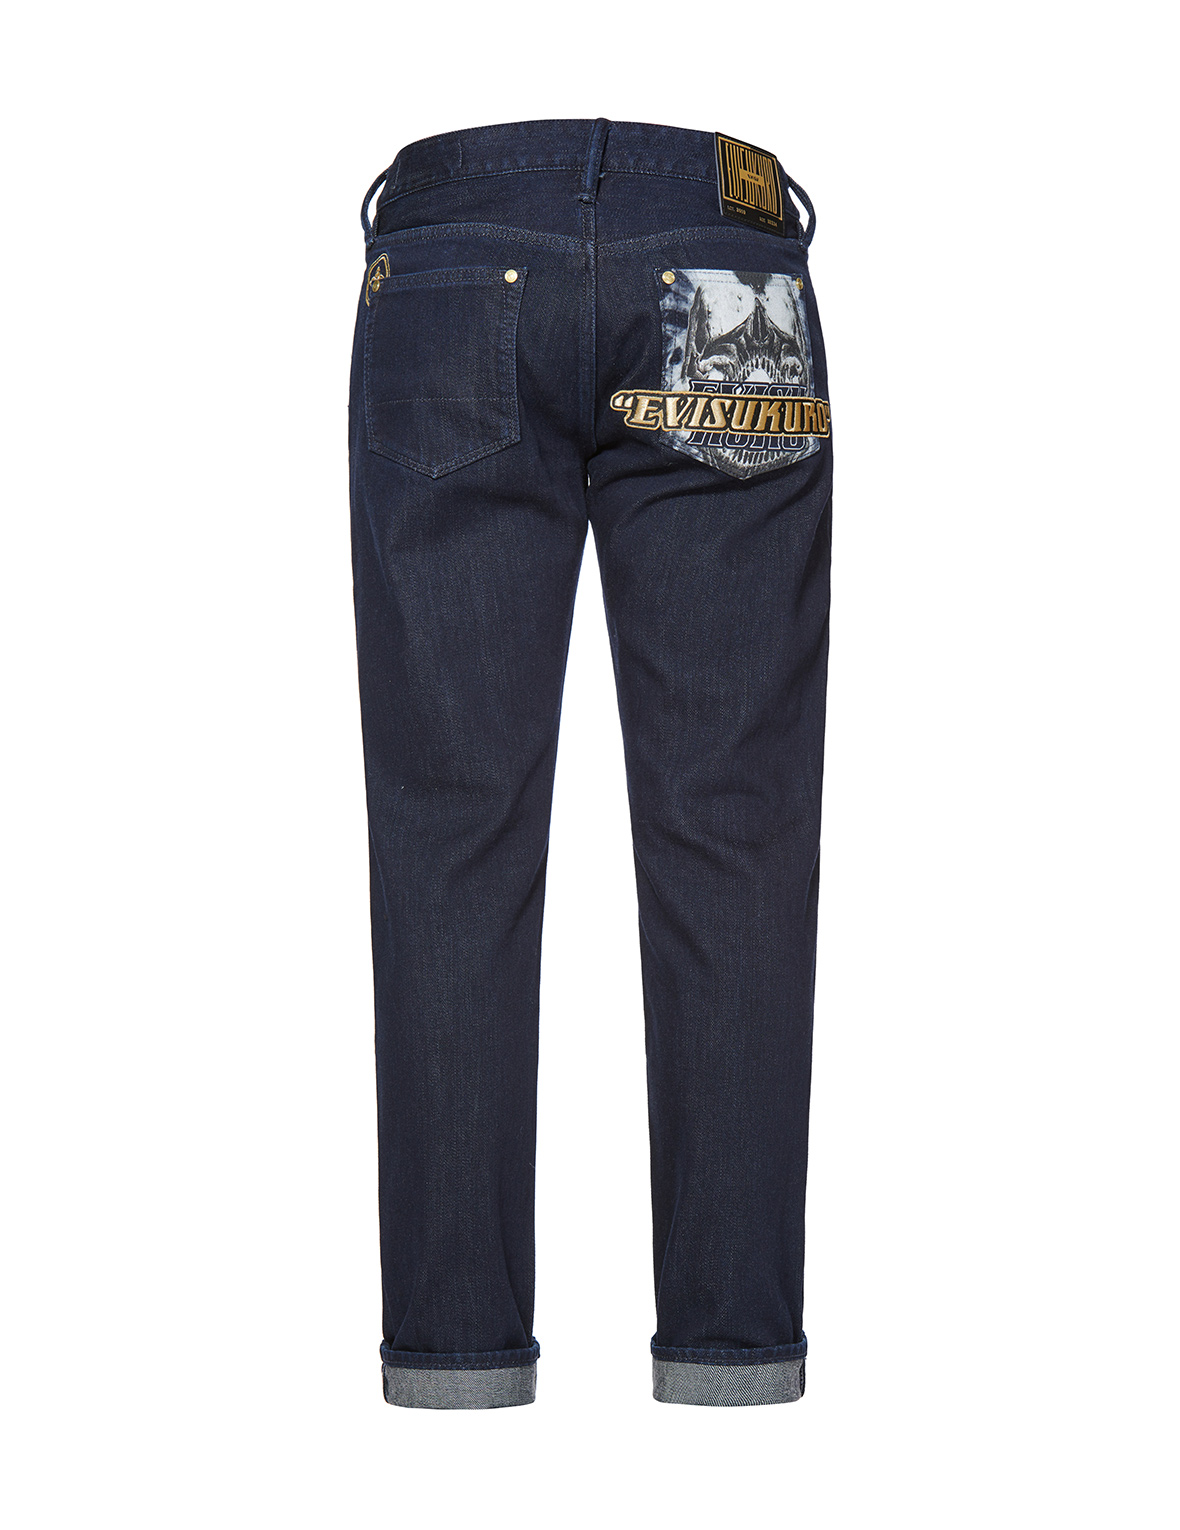 Smoky Hannya Embroidered Slim Fit Jeans #2010